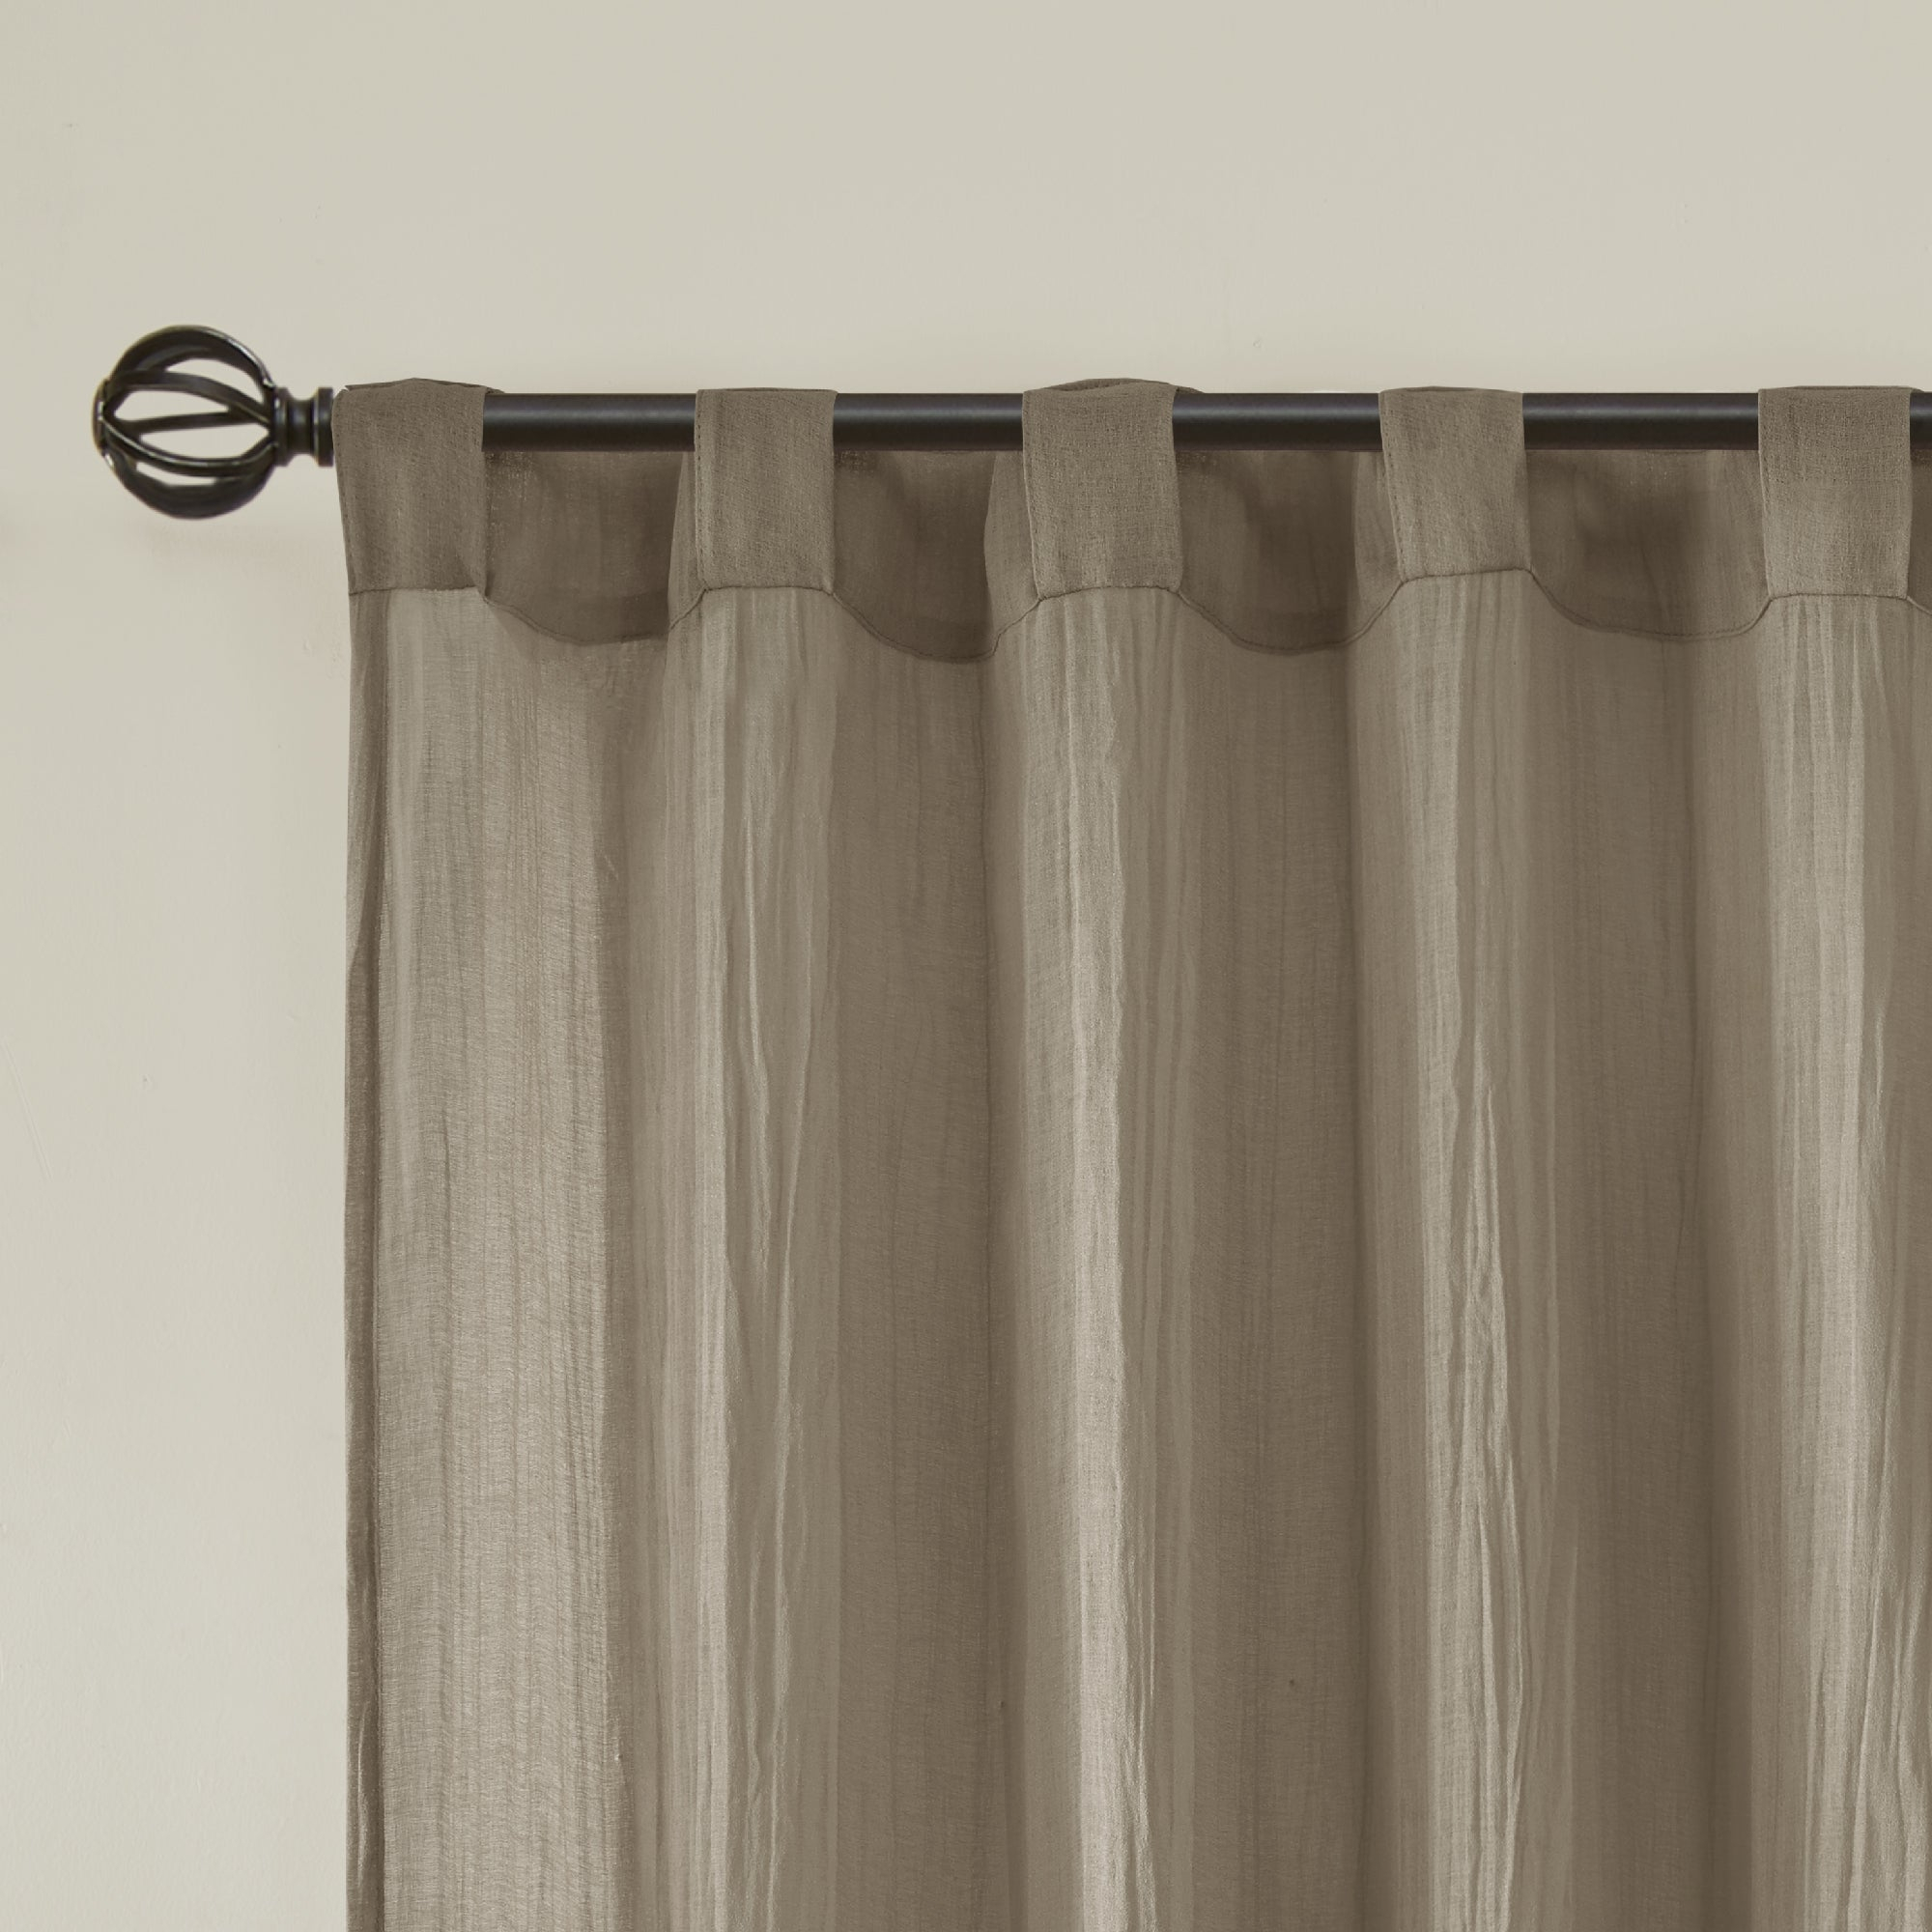 Madison Park Kaylee Solid Crushed Sheer Window Curtain Pair With Kaylee Solid Crushed Sheer Window Curtain Pairs (View 5 of 20)